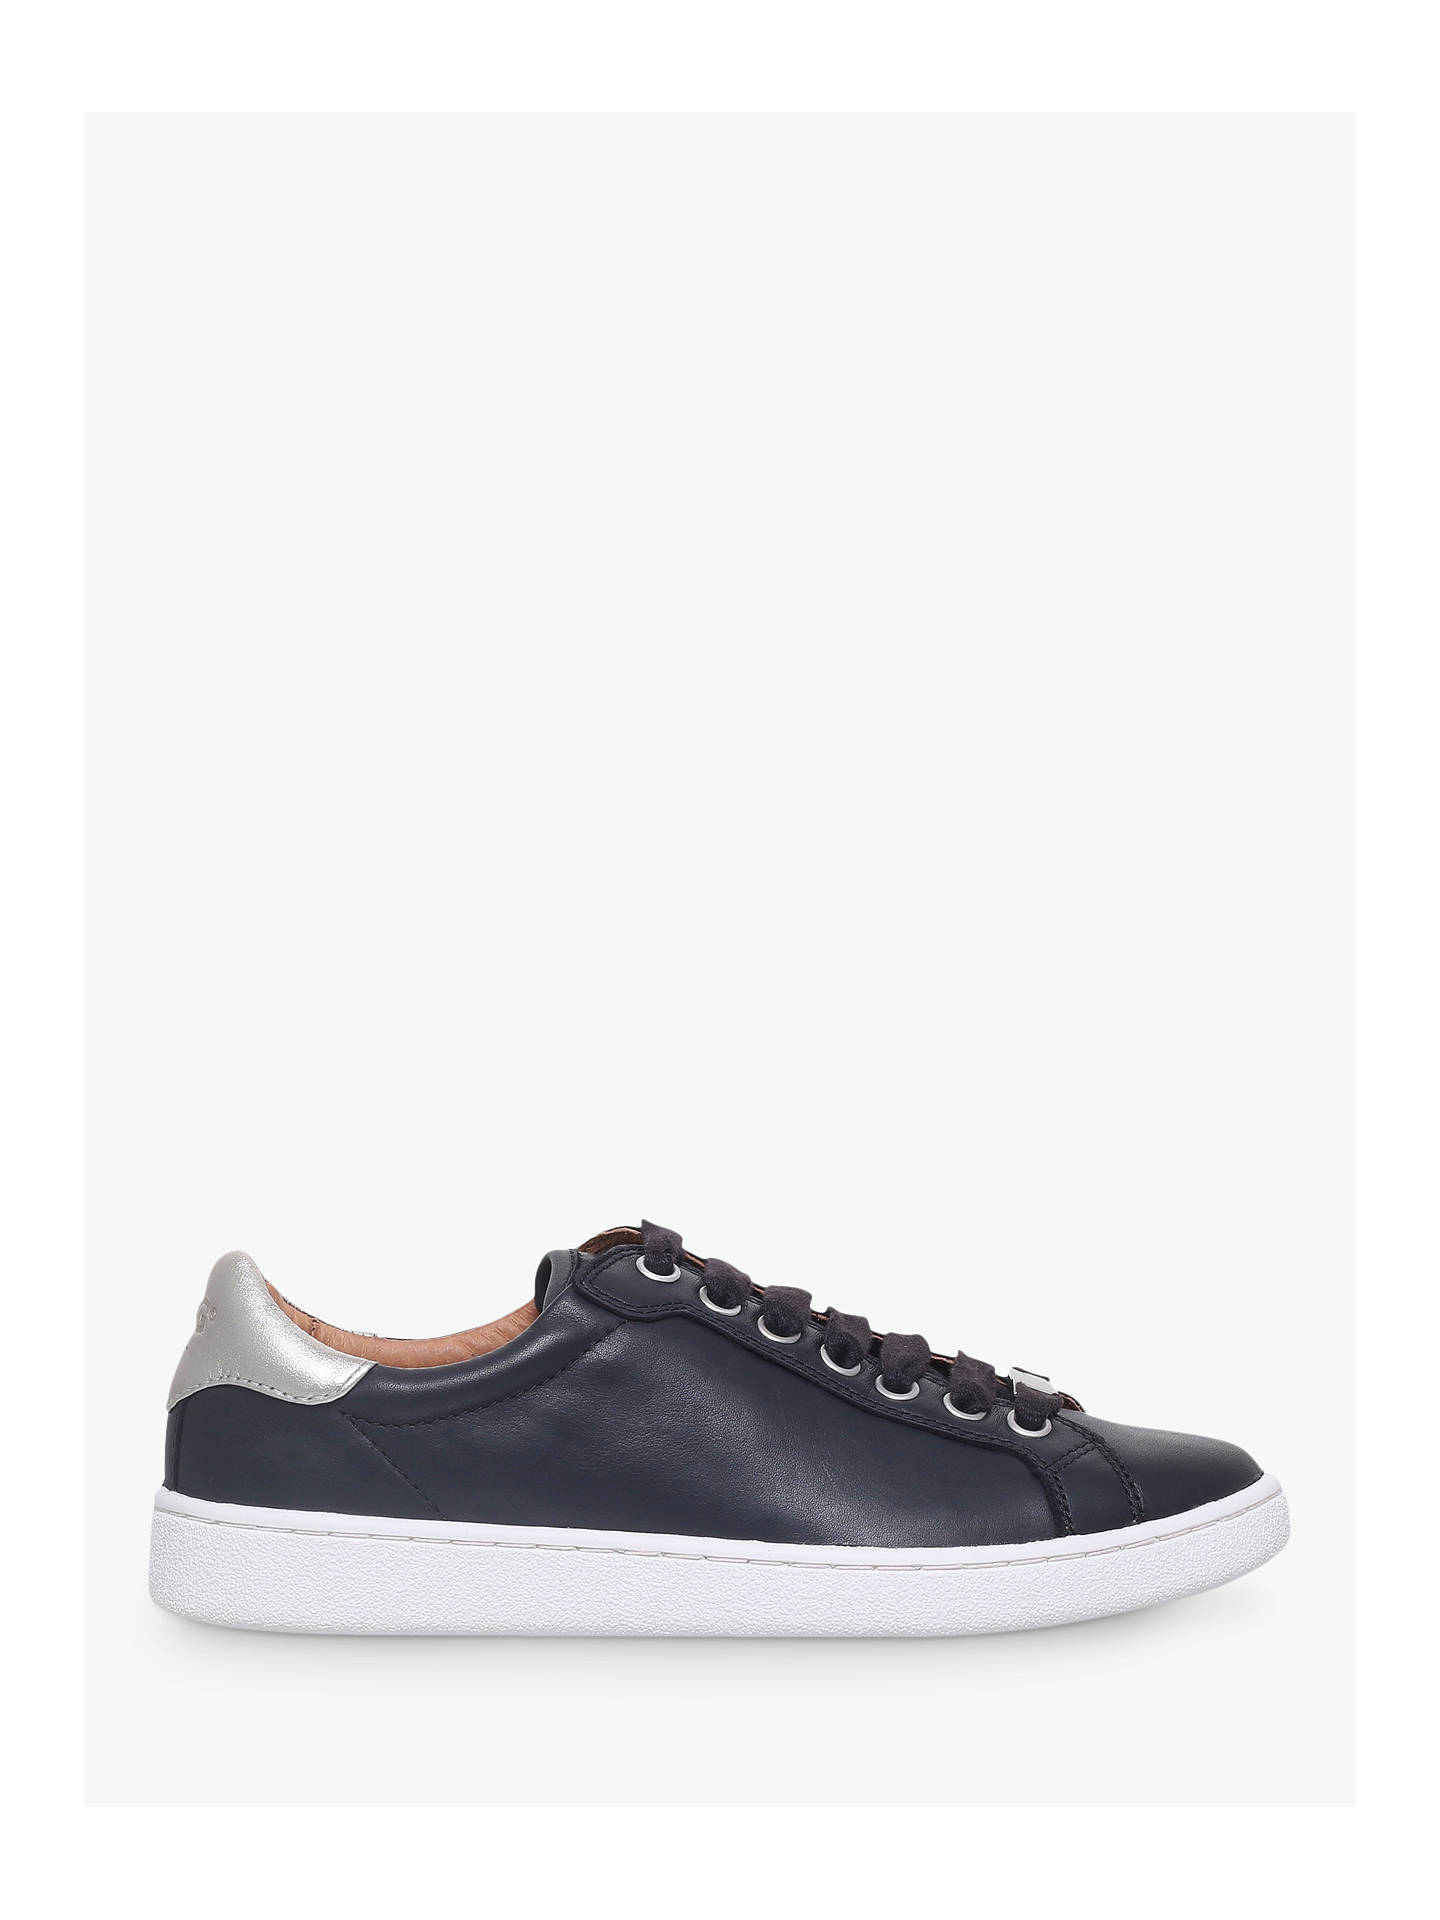 79f2caf0515 UGG Milo Lace Up Trainers, Black Leather at John Lewis & Partners